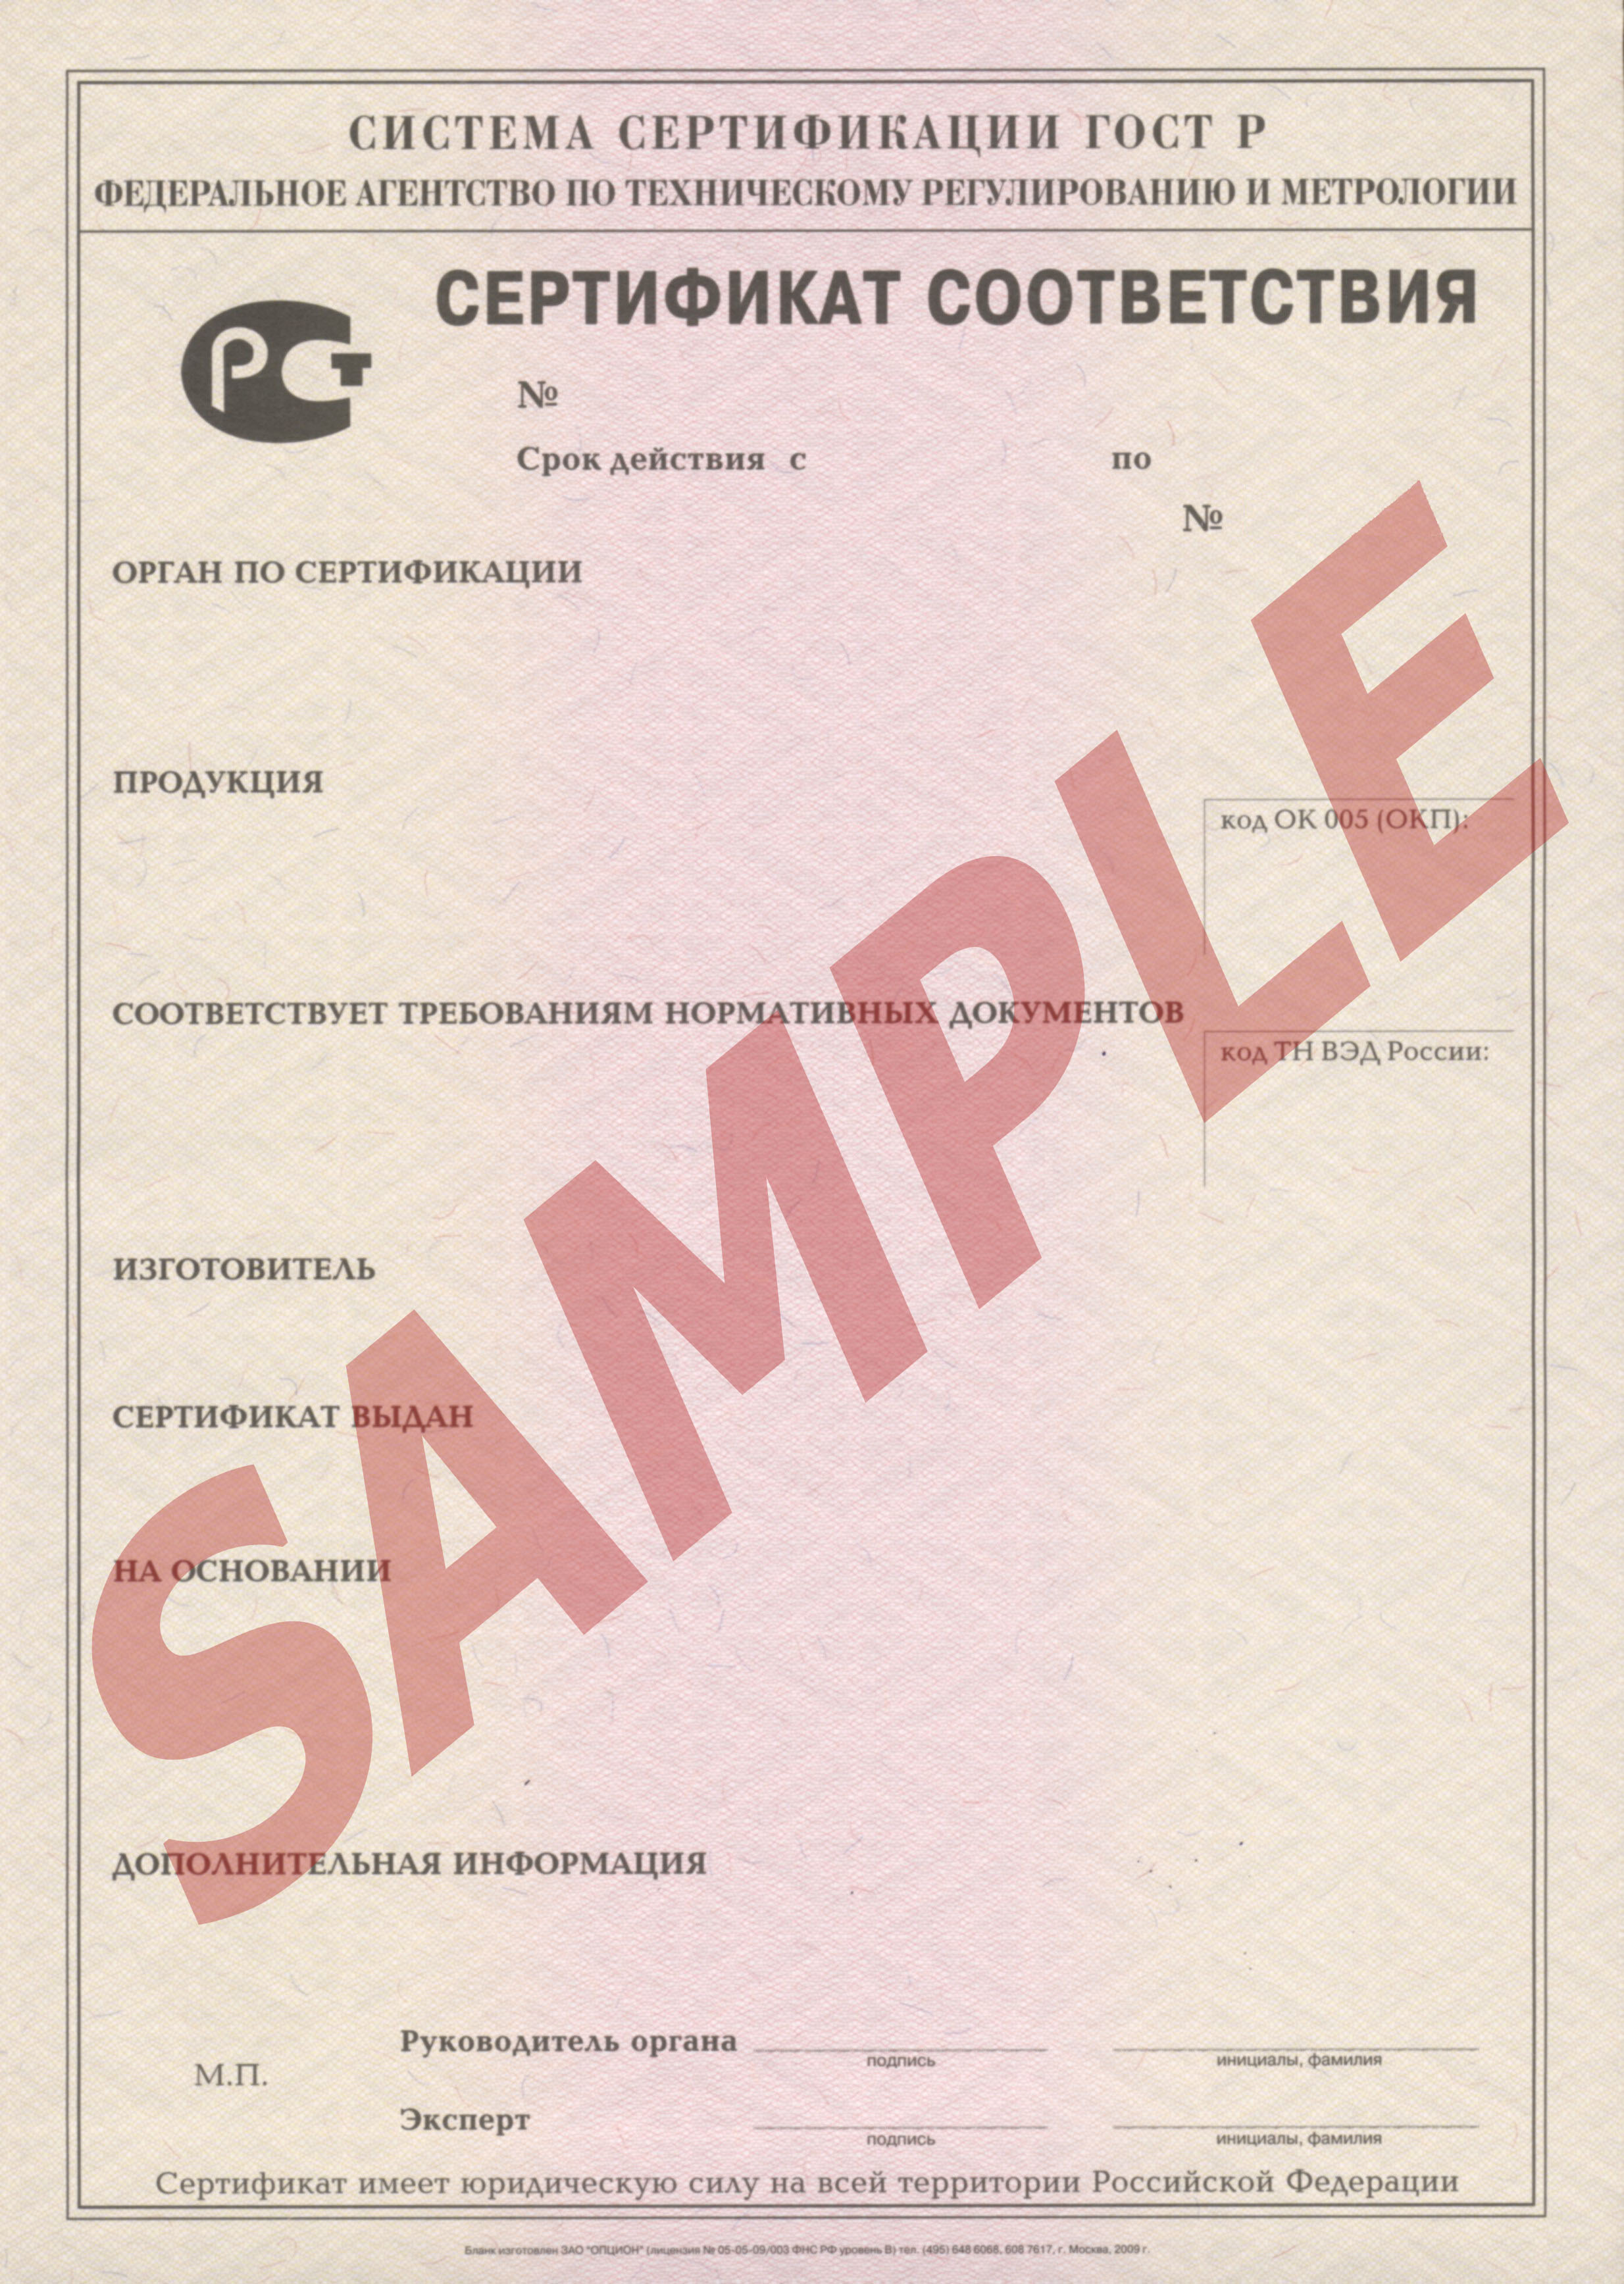 Icc in prague certificates of conformity of the products with the voluntary requirements of gost r certification system conclusions about belonging of products to the xflitez Choice Image